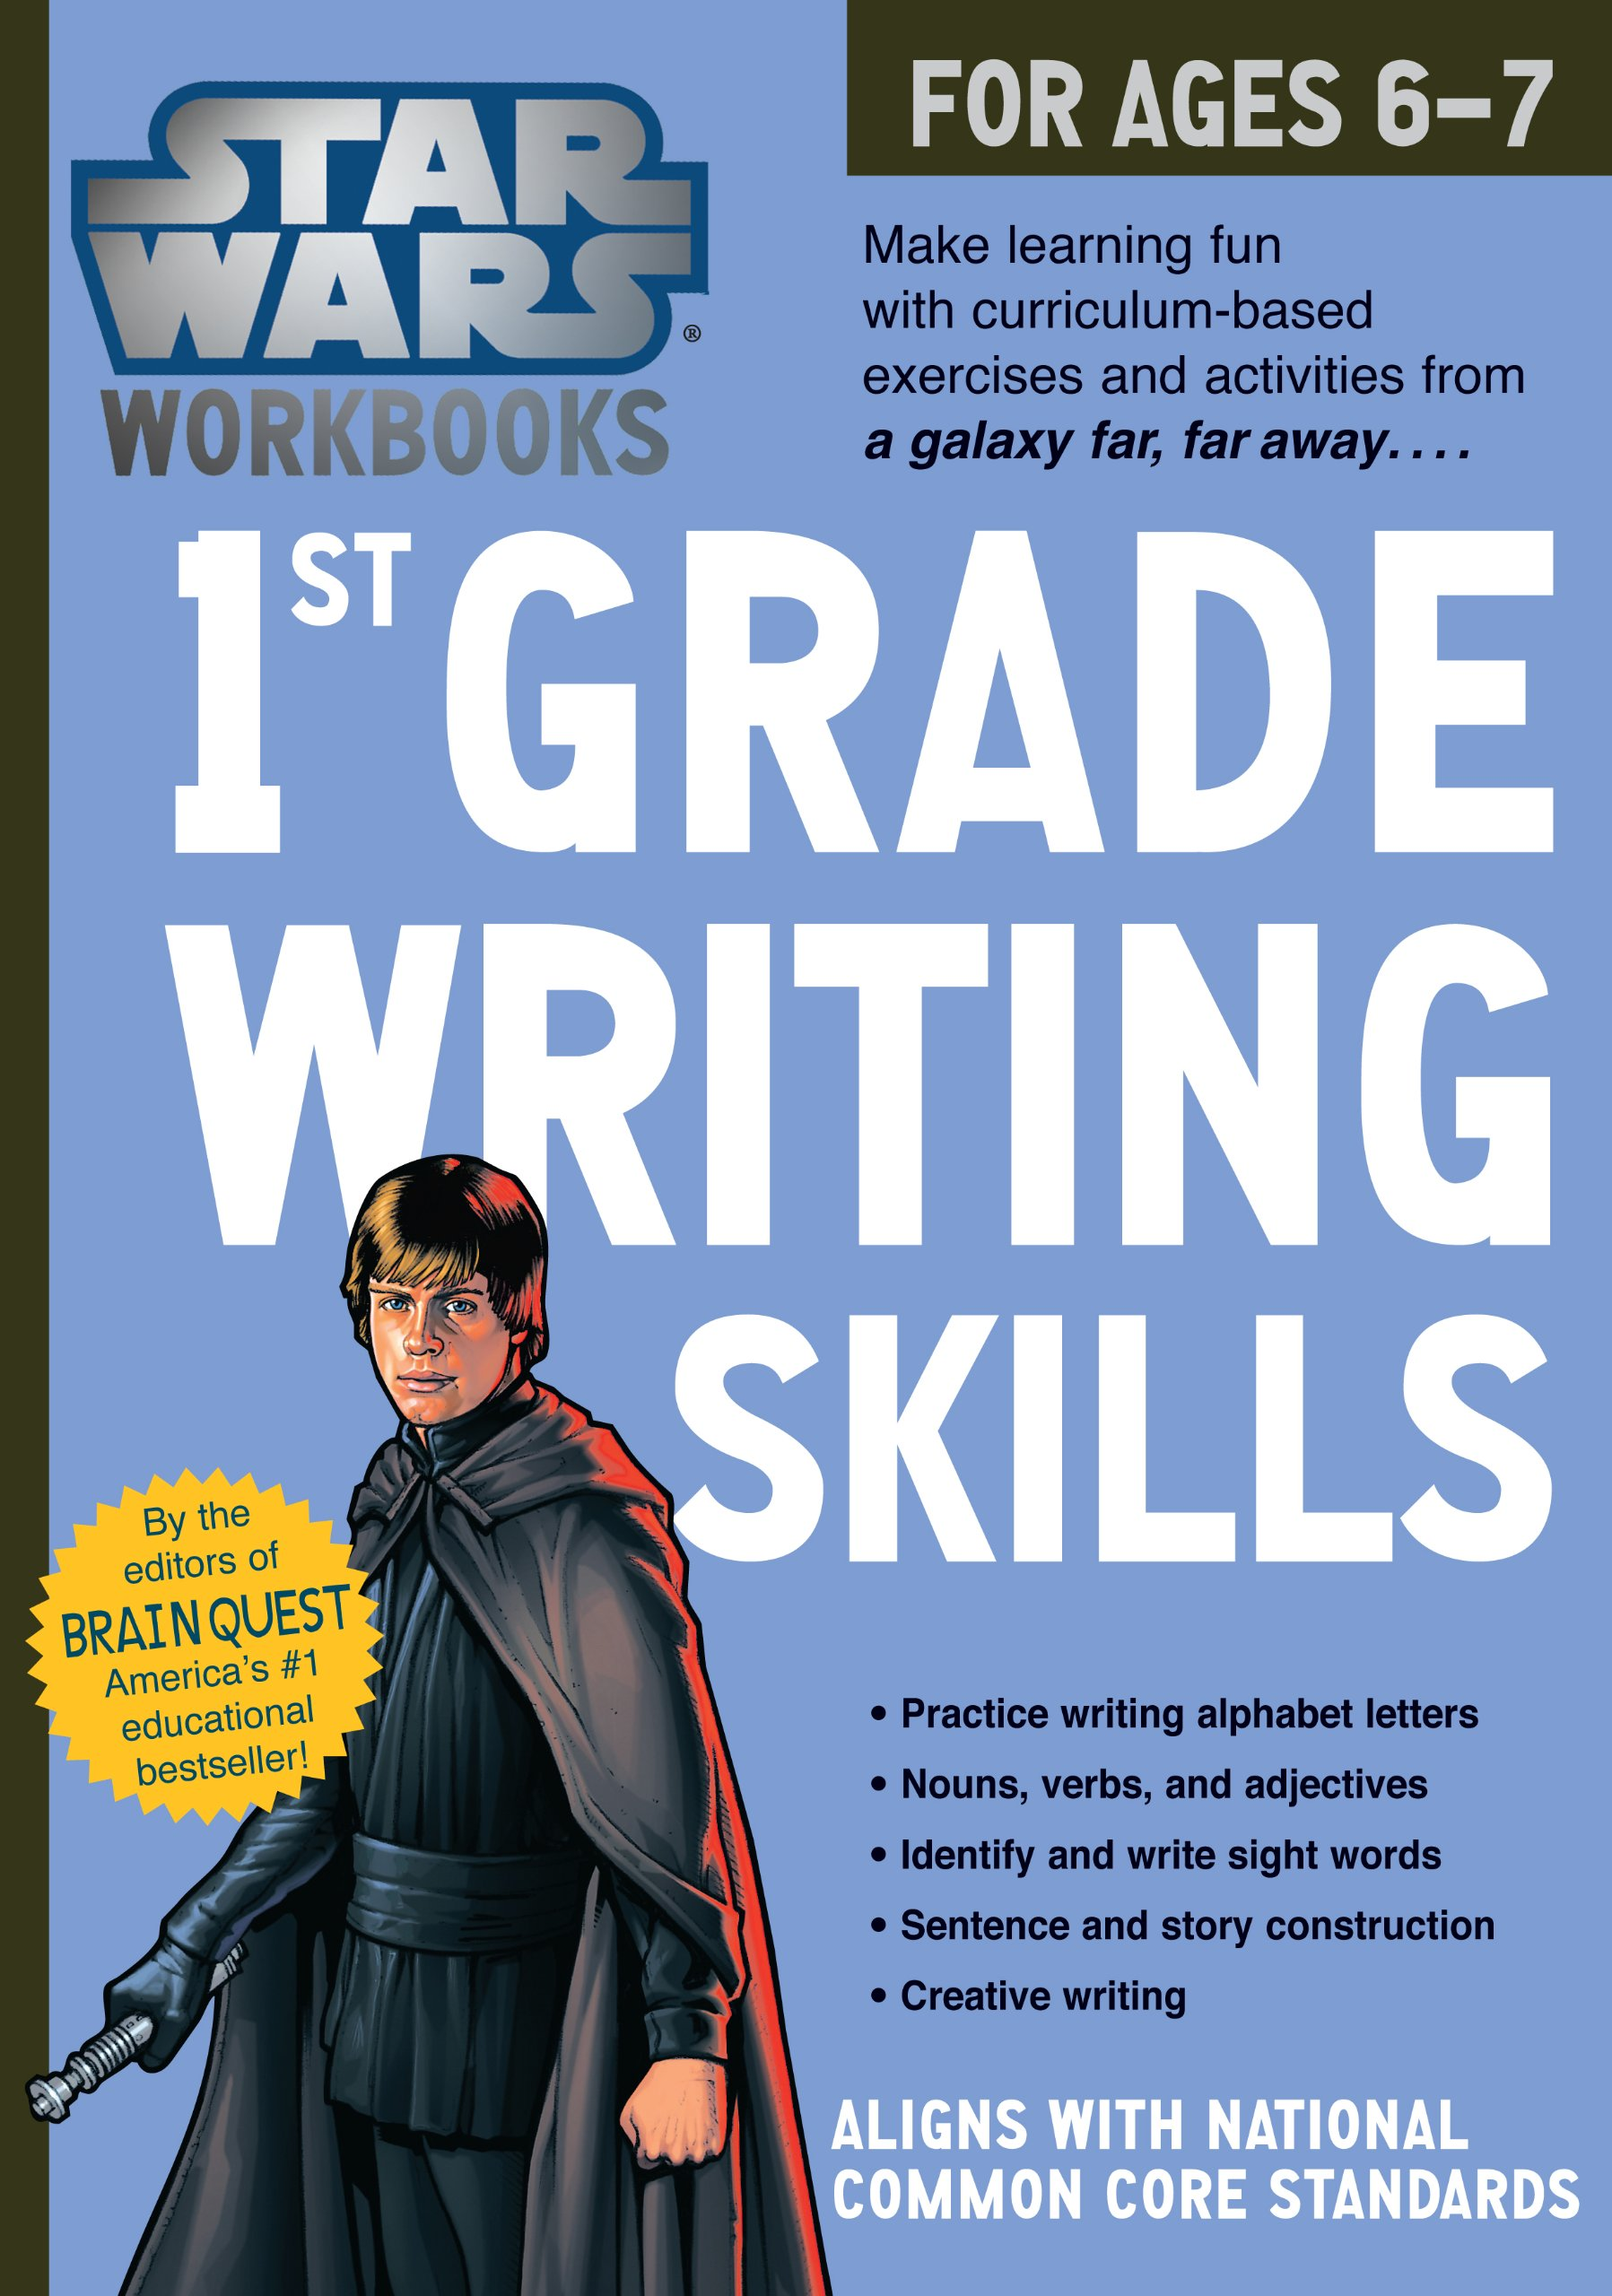 Star Wars Workbooks: 1st Grade Writing Skills